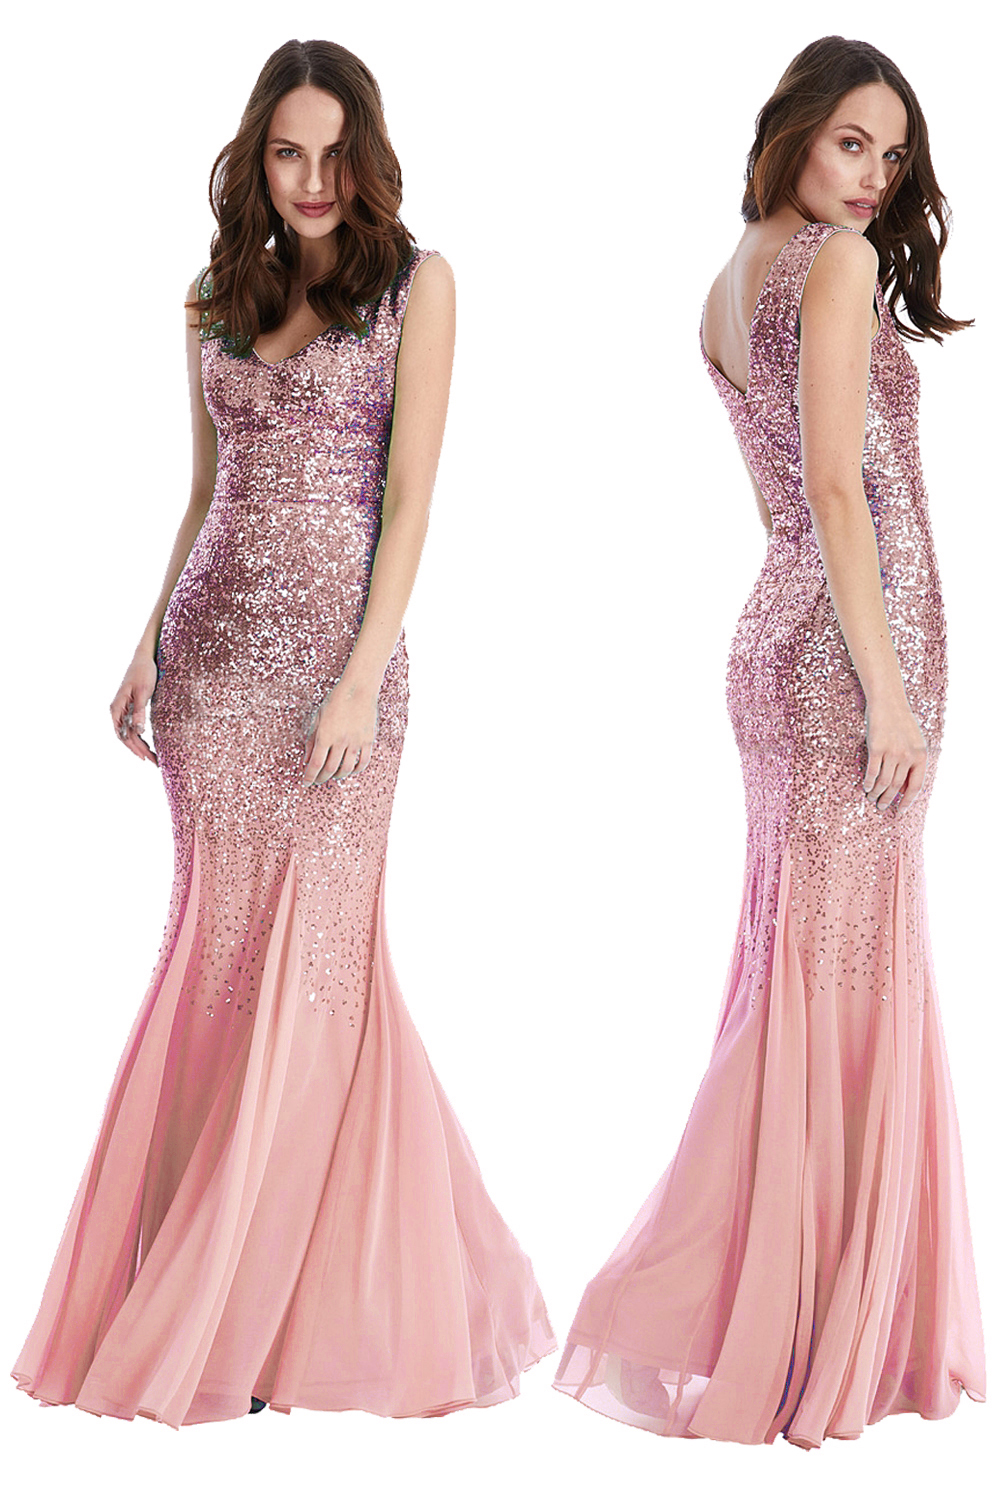 Prom Dresses 2016 | Shop Prom Dresses at PDUK online and instore ...